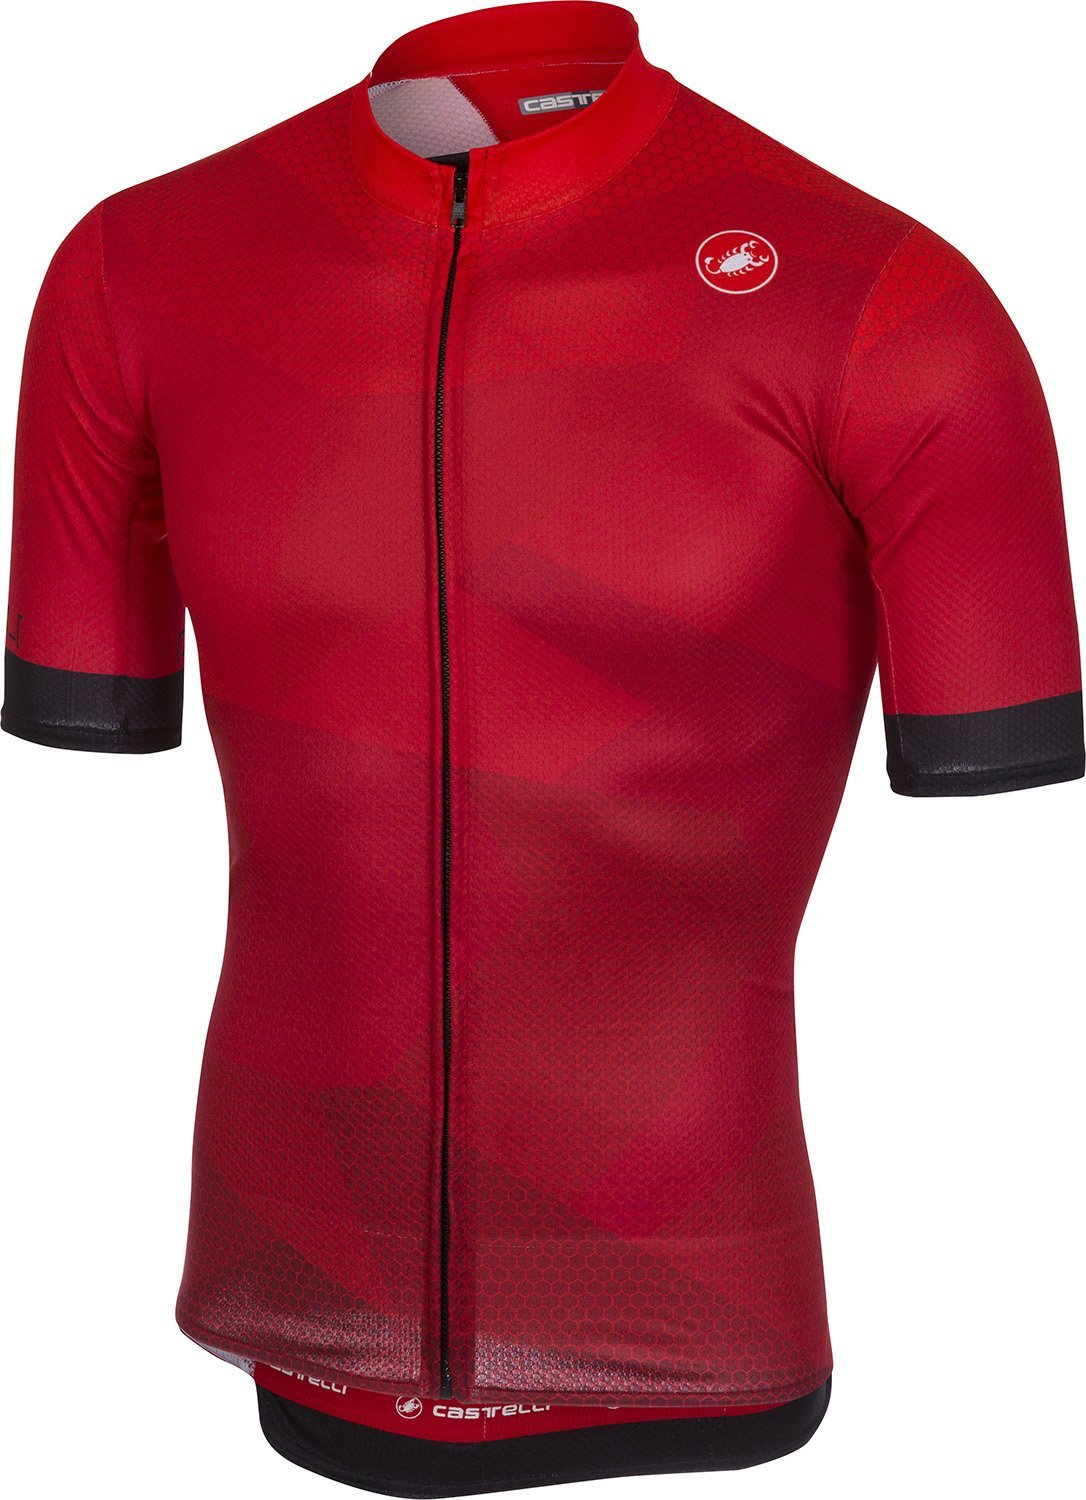 Castelli Flusso Mens Short Sleeve Cycling Jersey - Red £80.00 bf57695e2